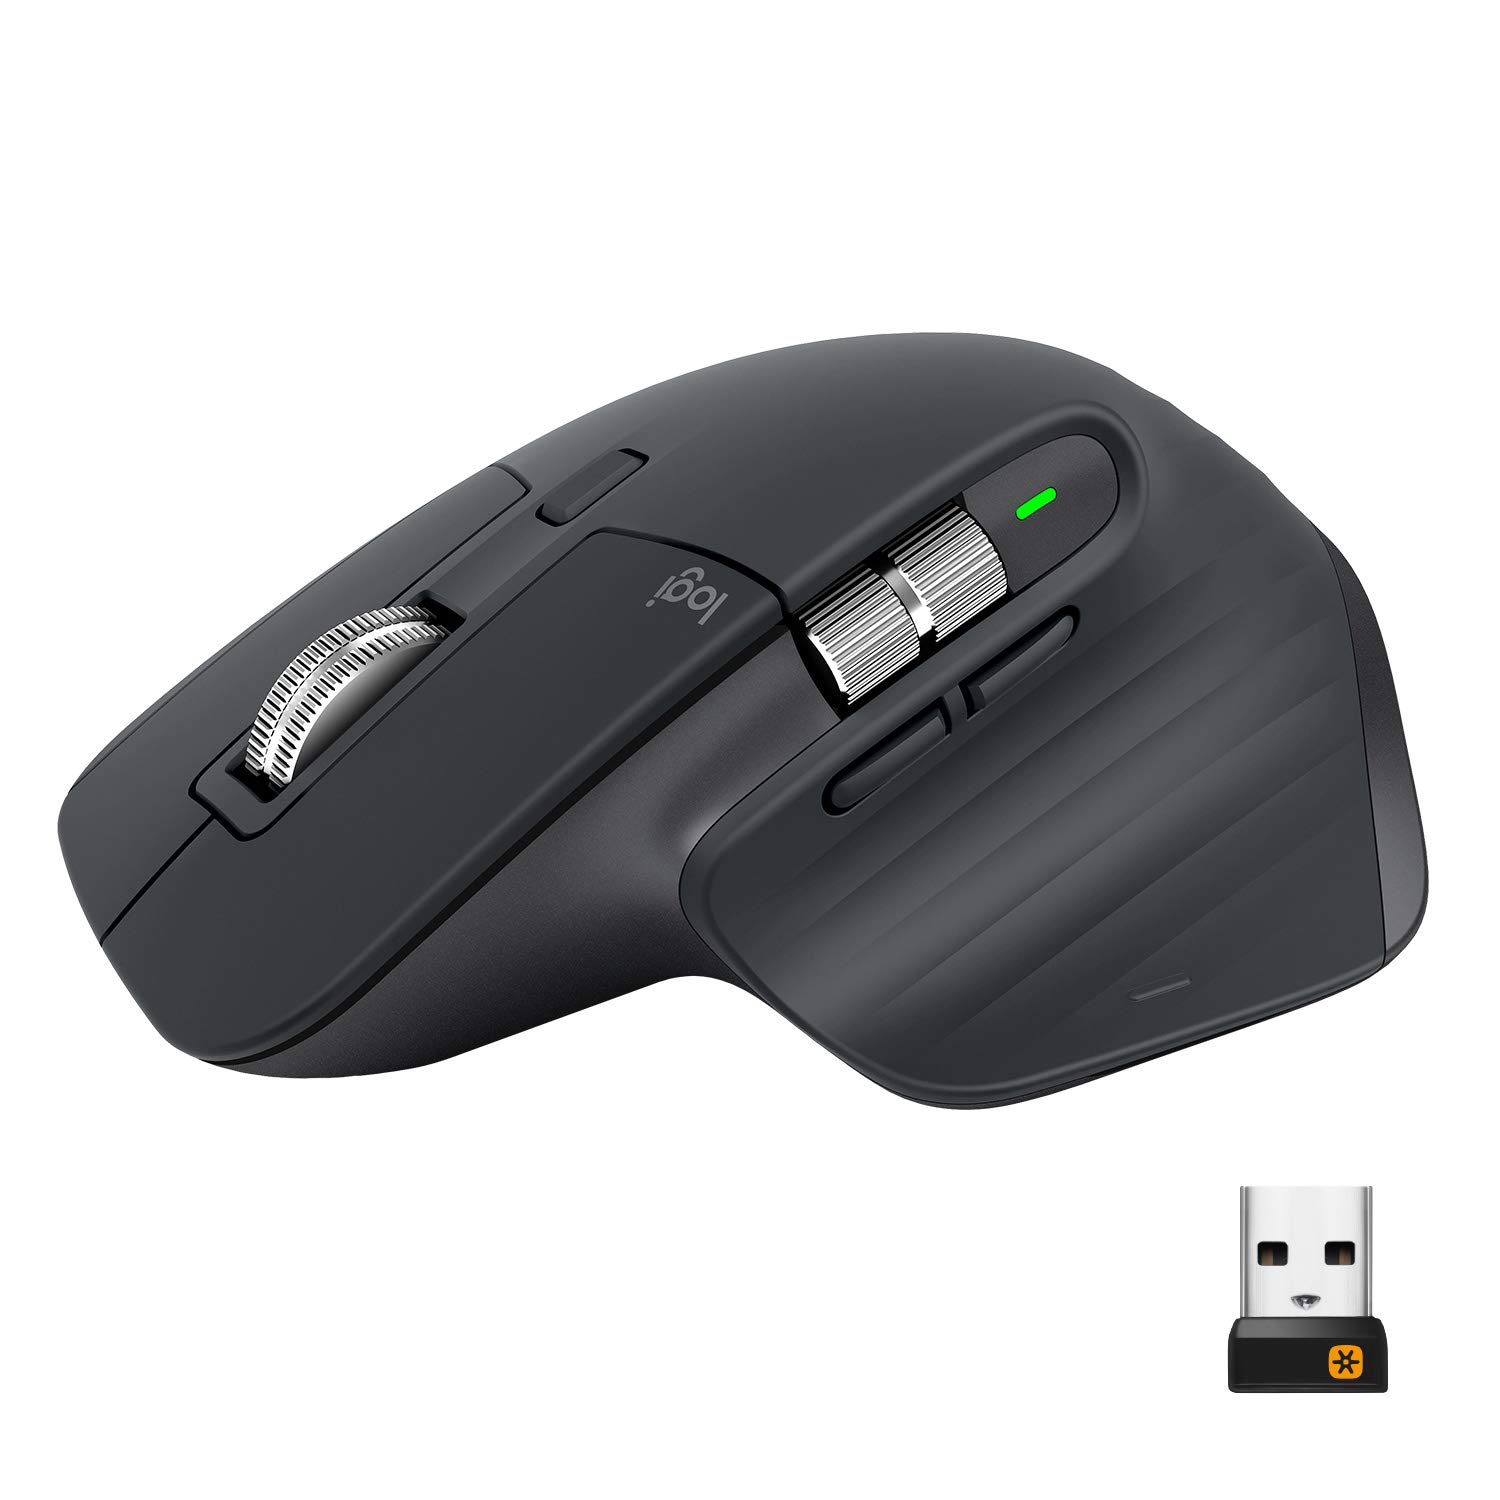 Mouse Inalambrico Logitech Mx Master 3 Advanced Graphite